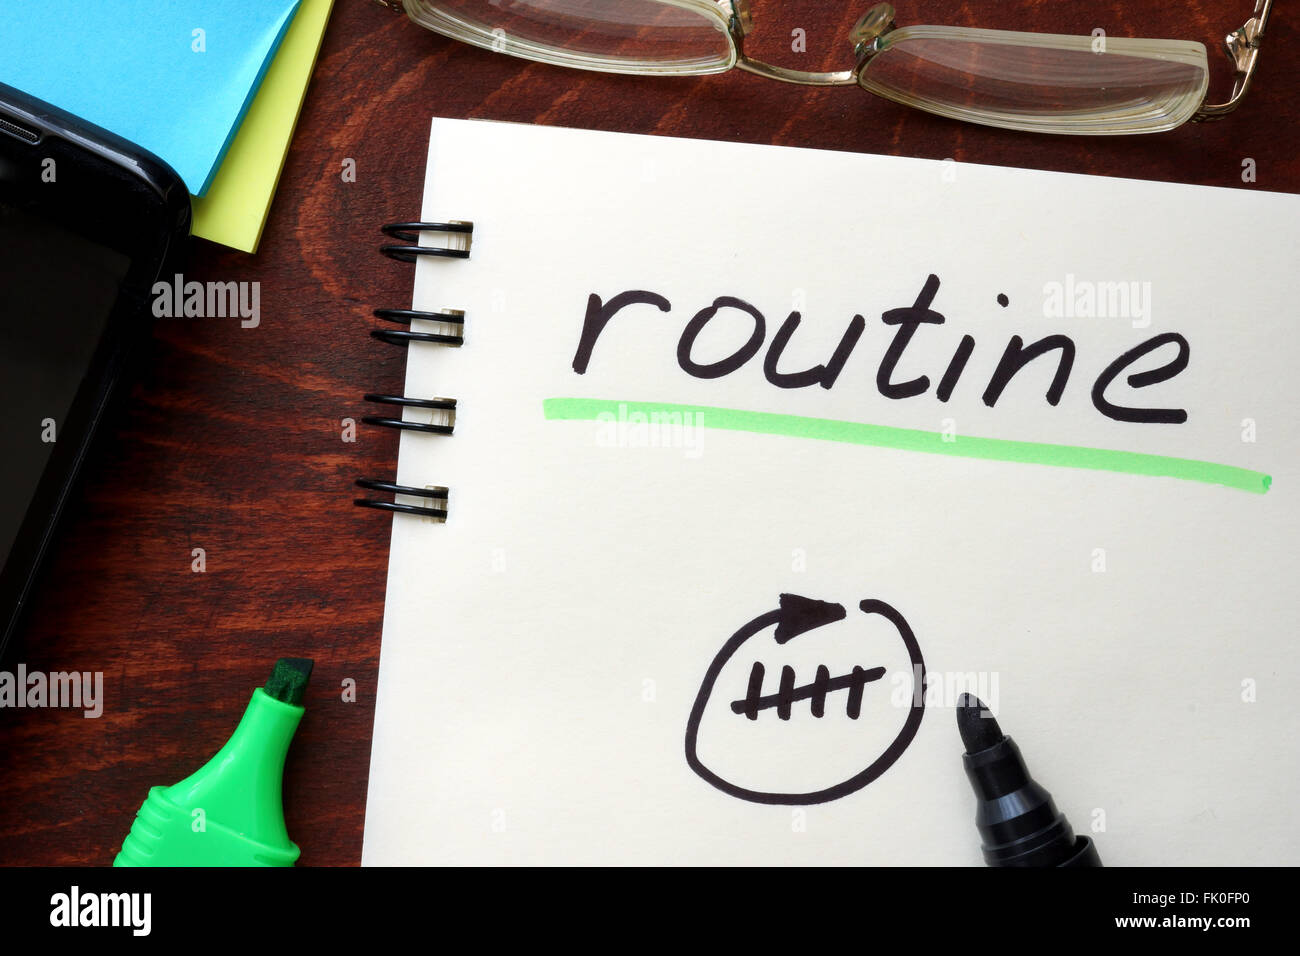 Routine written on notepad on a table. - Stock Image